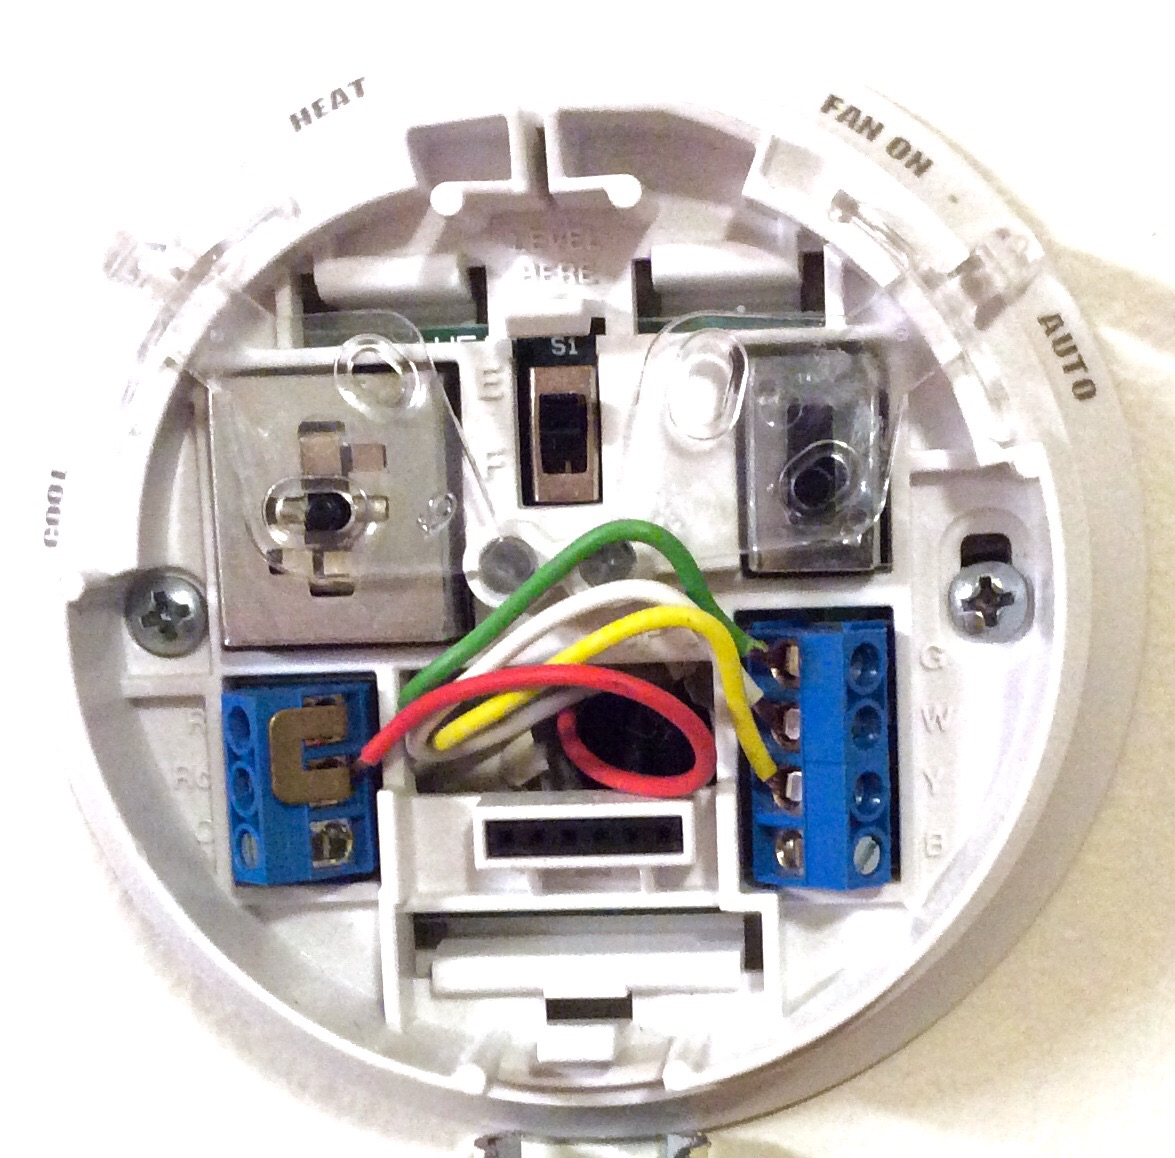 Honeywell Thermostat Wiring Color Code Toms Tek Stop Lyric T5 Diagram Installation Picture Of The Commonly Used Green White Yellow